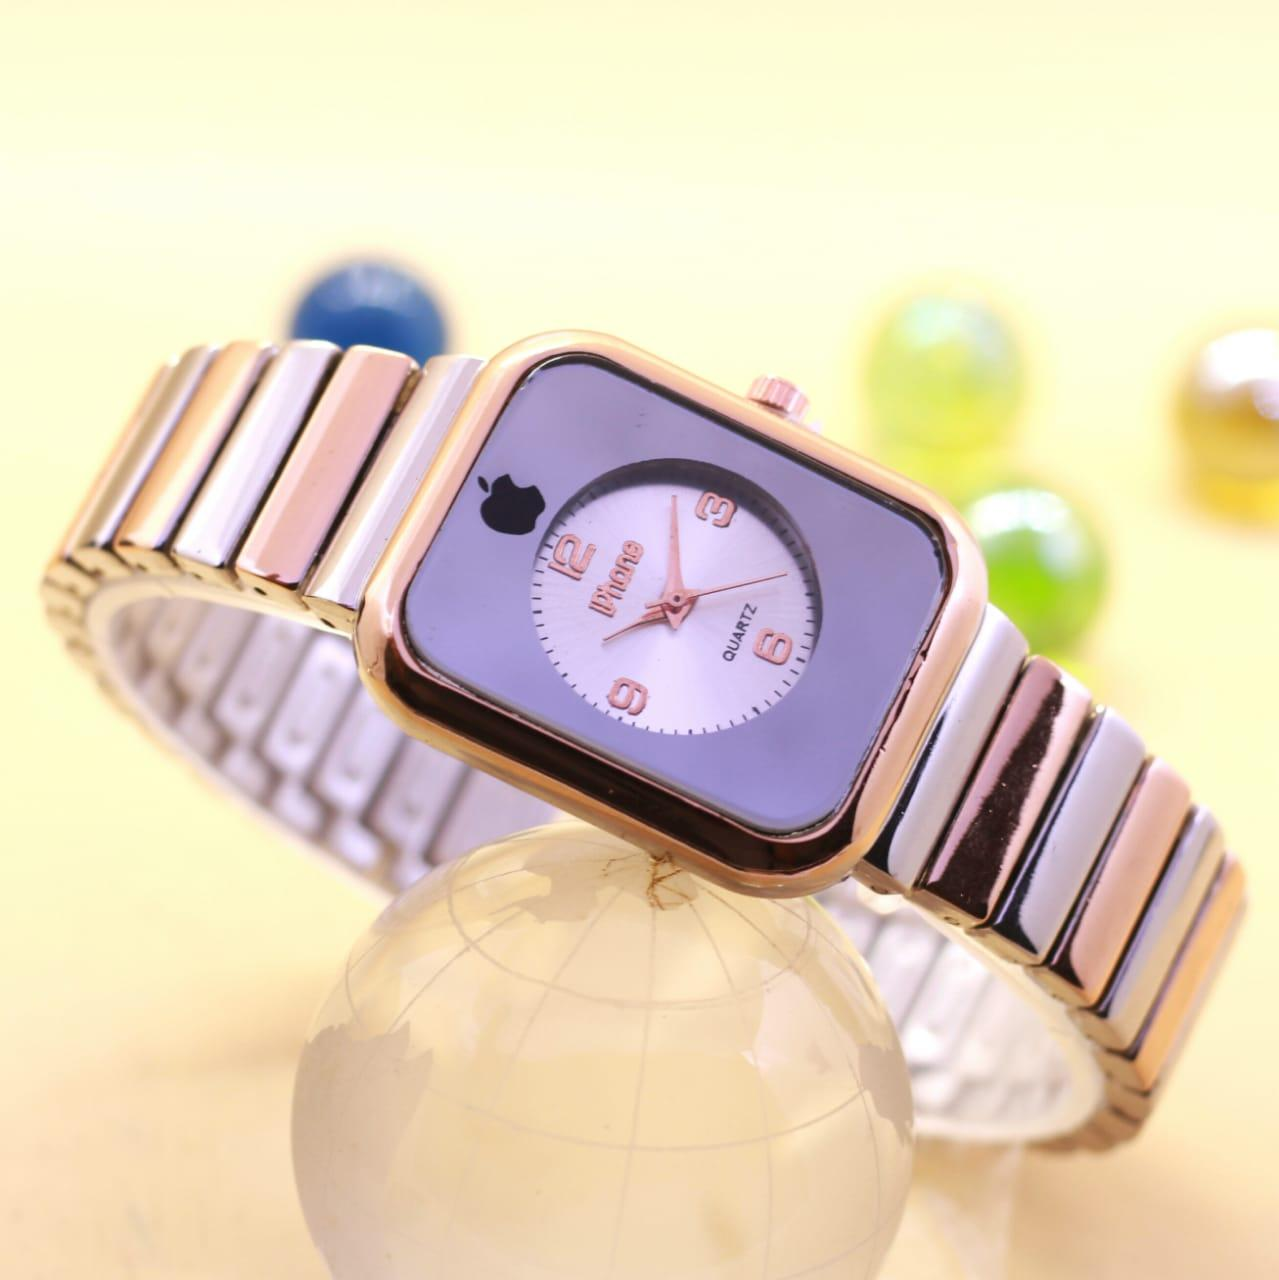 Jam Tangan No Brand Daftar Harga Desember 2018 Zeca 311 Kombi Gold Couple Stainless Steel Silver Fashion Wanita Iphone Analog Rantai